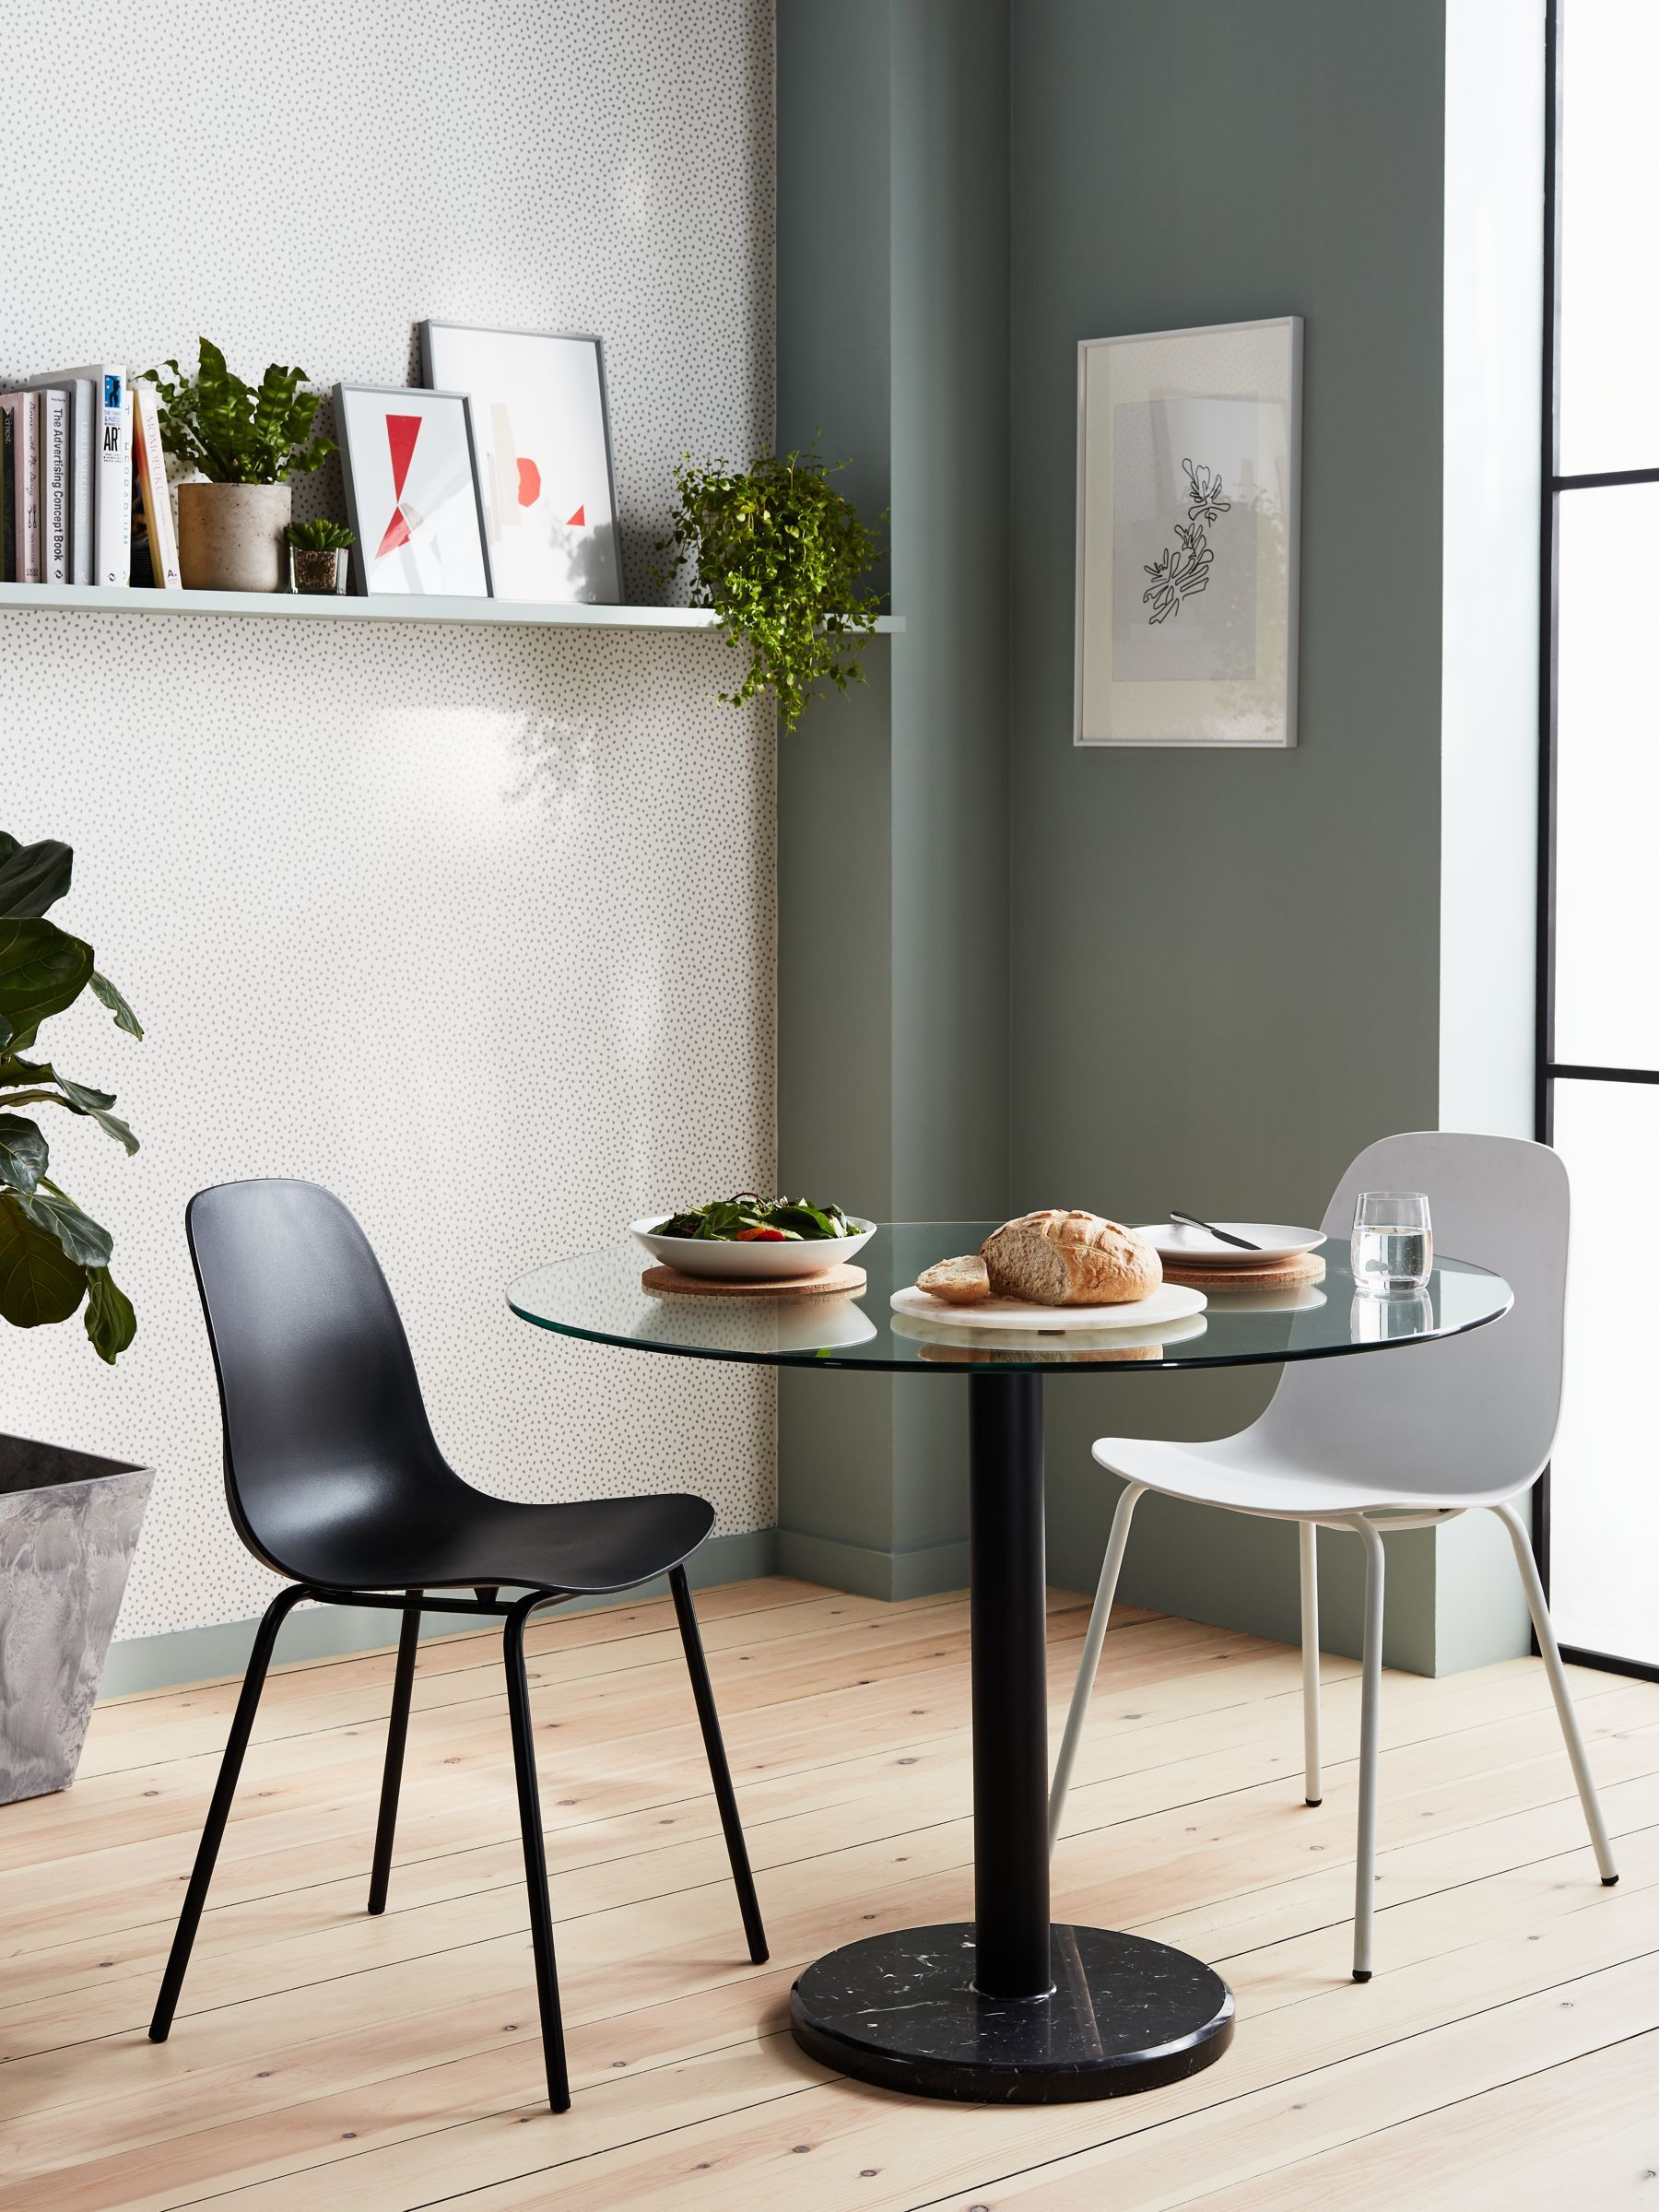 housejohn lewis enzo 2 seater glass round dining table